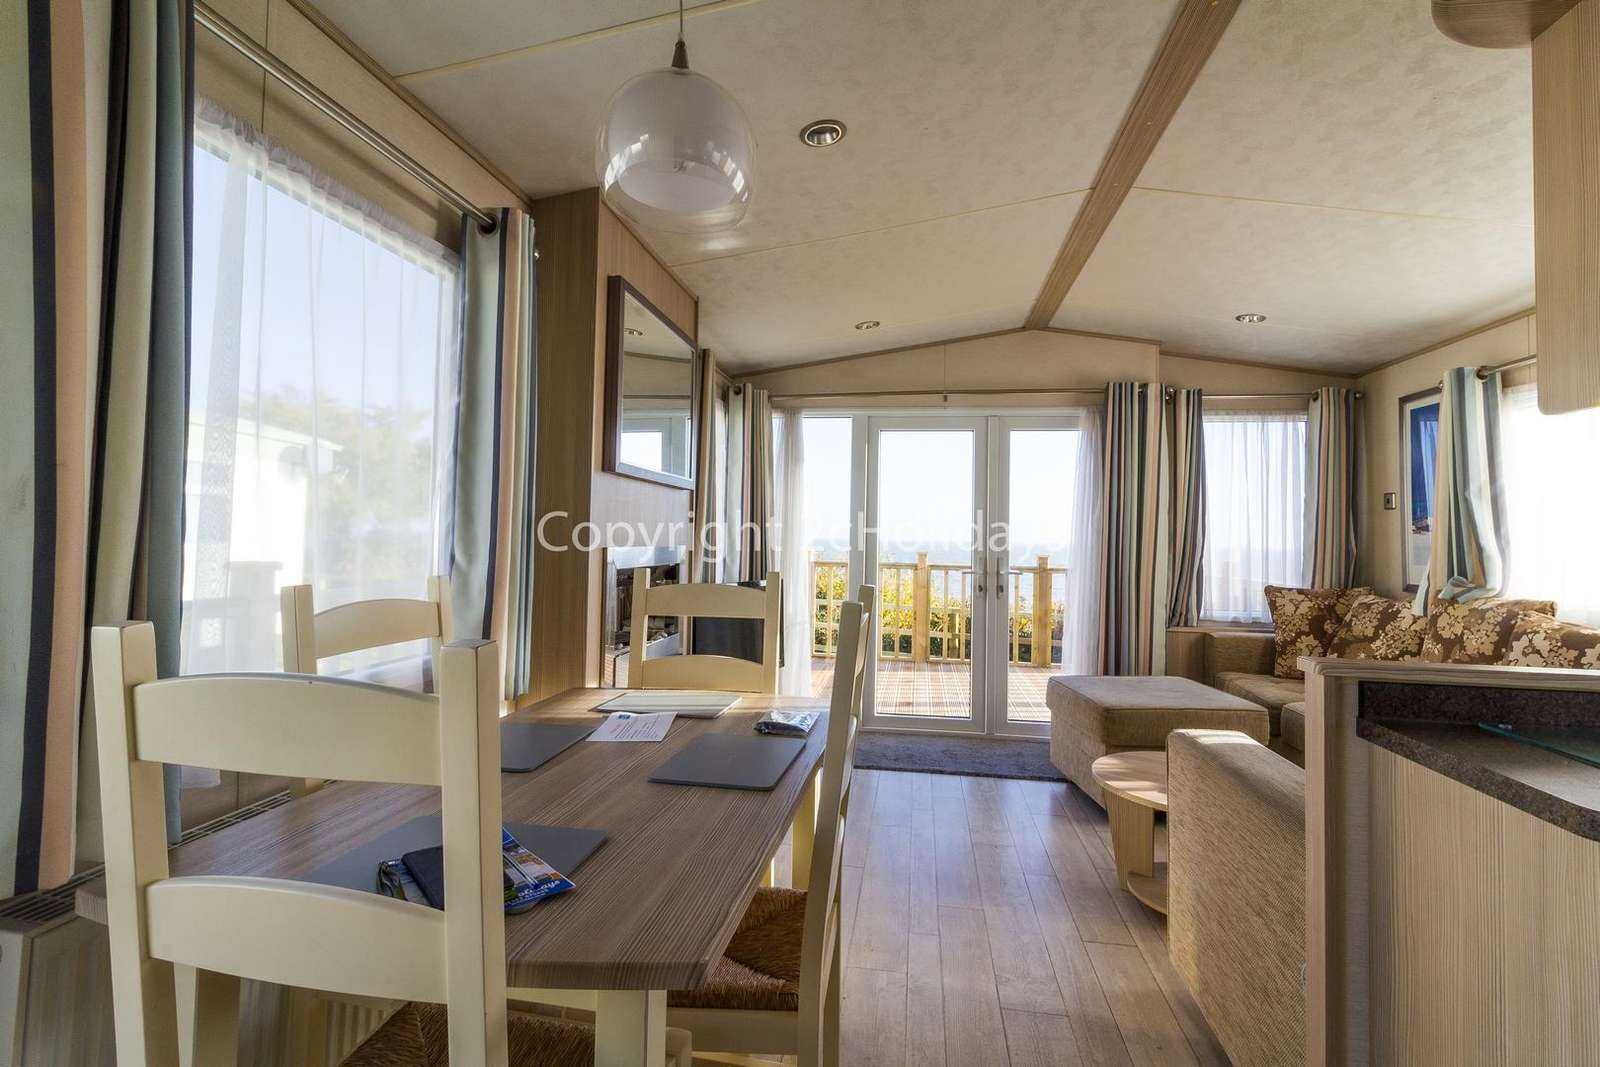 Azure Seas Holiday Village is near to Africa Alive